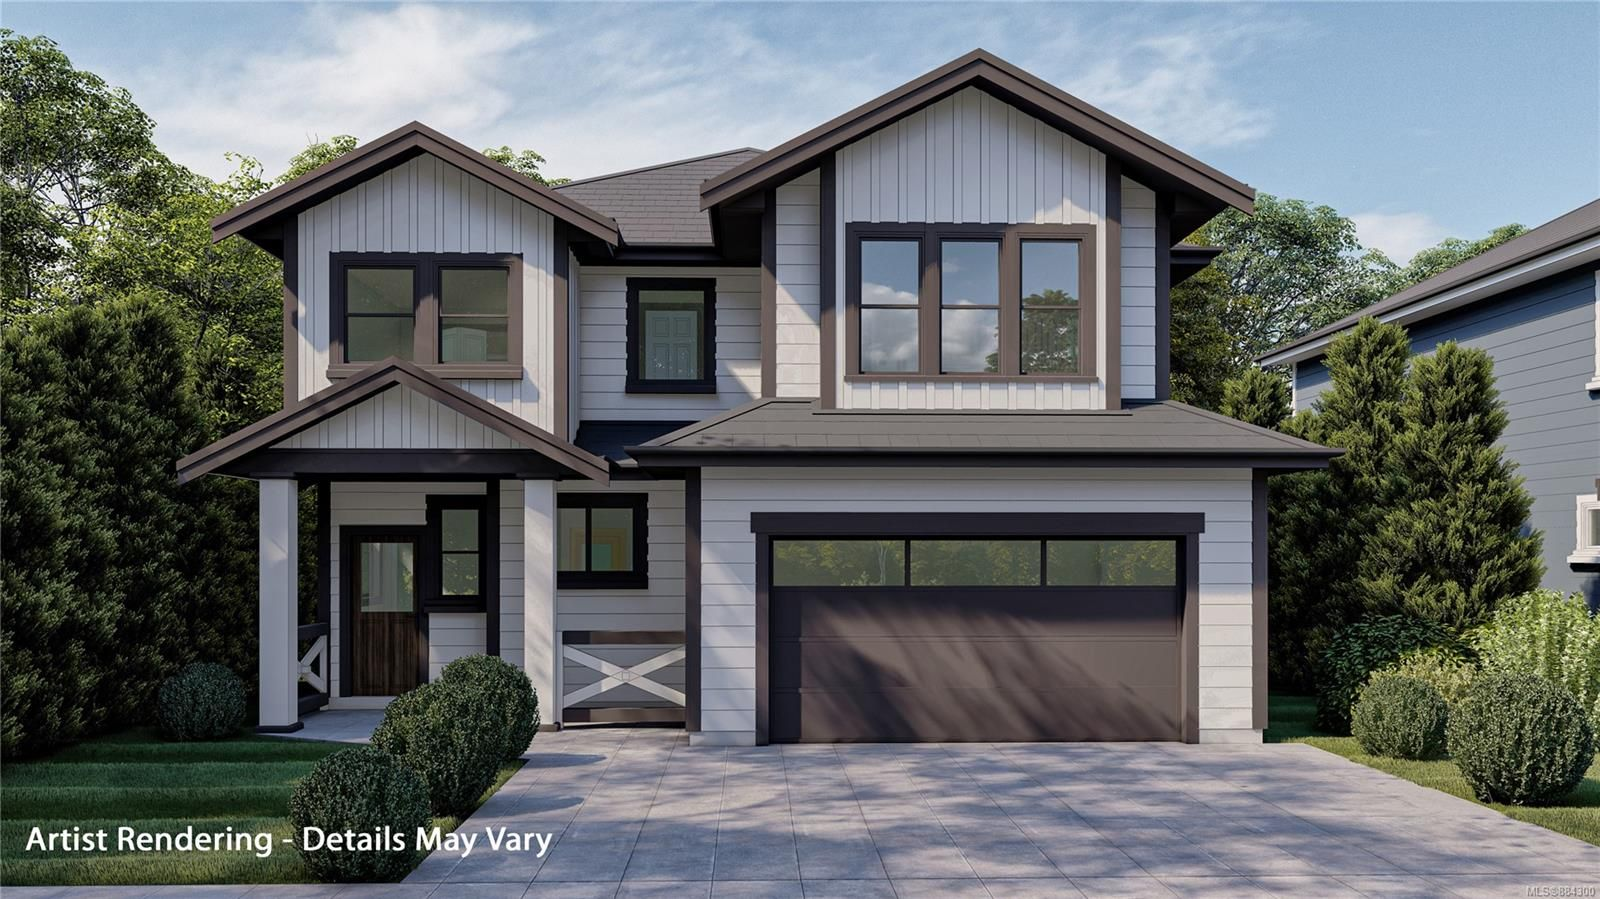 Main Photo: 936 Blakeon Pl in : La Olympic View House for sale (Langford)  : MLS®# 884300